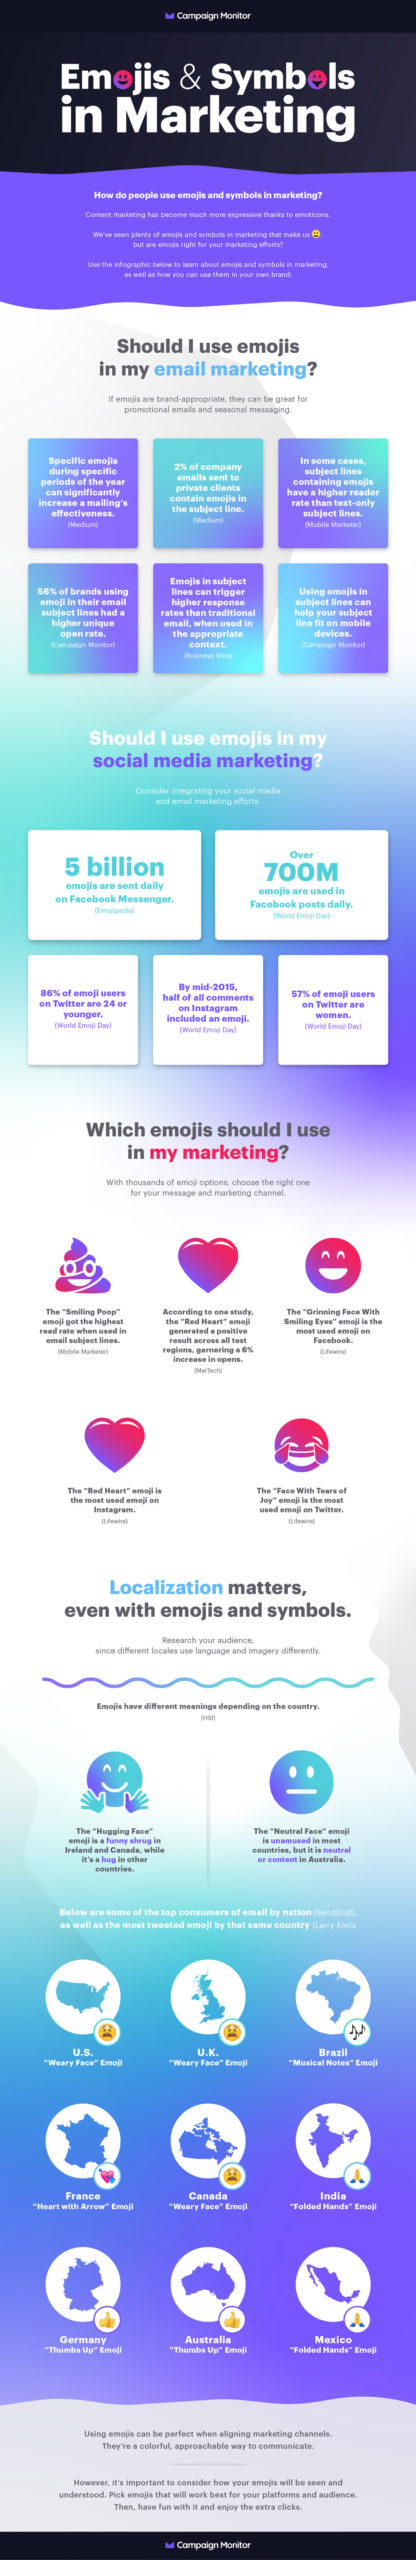 Why your marketing strategy needs emojis Infographic Image